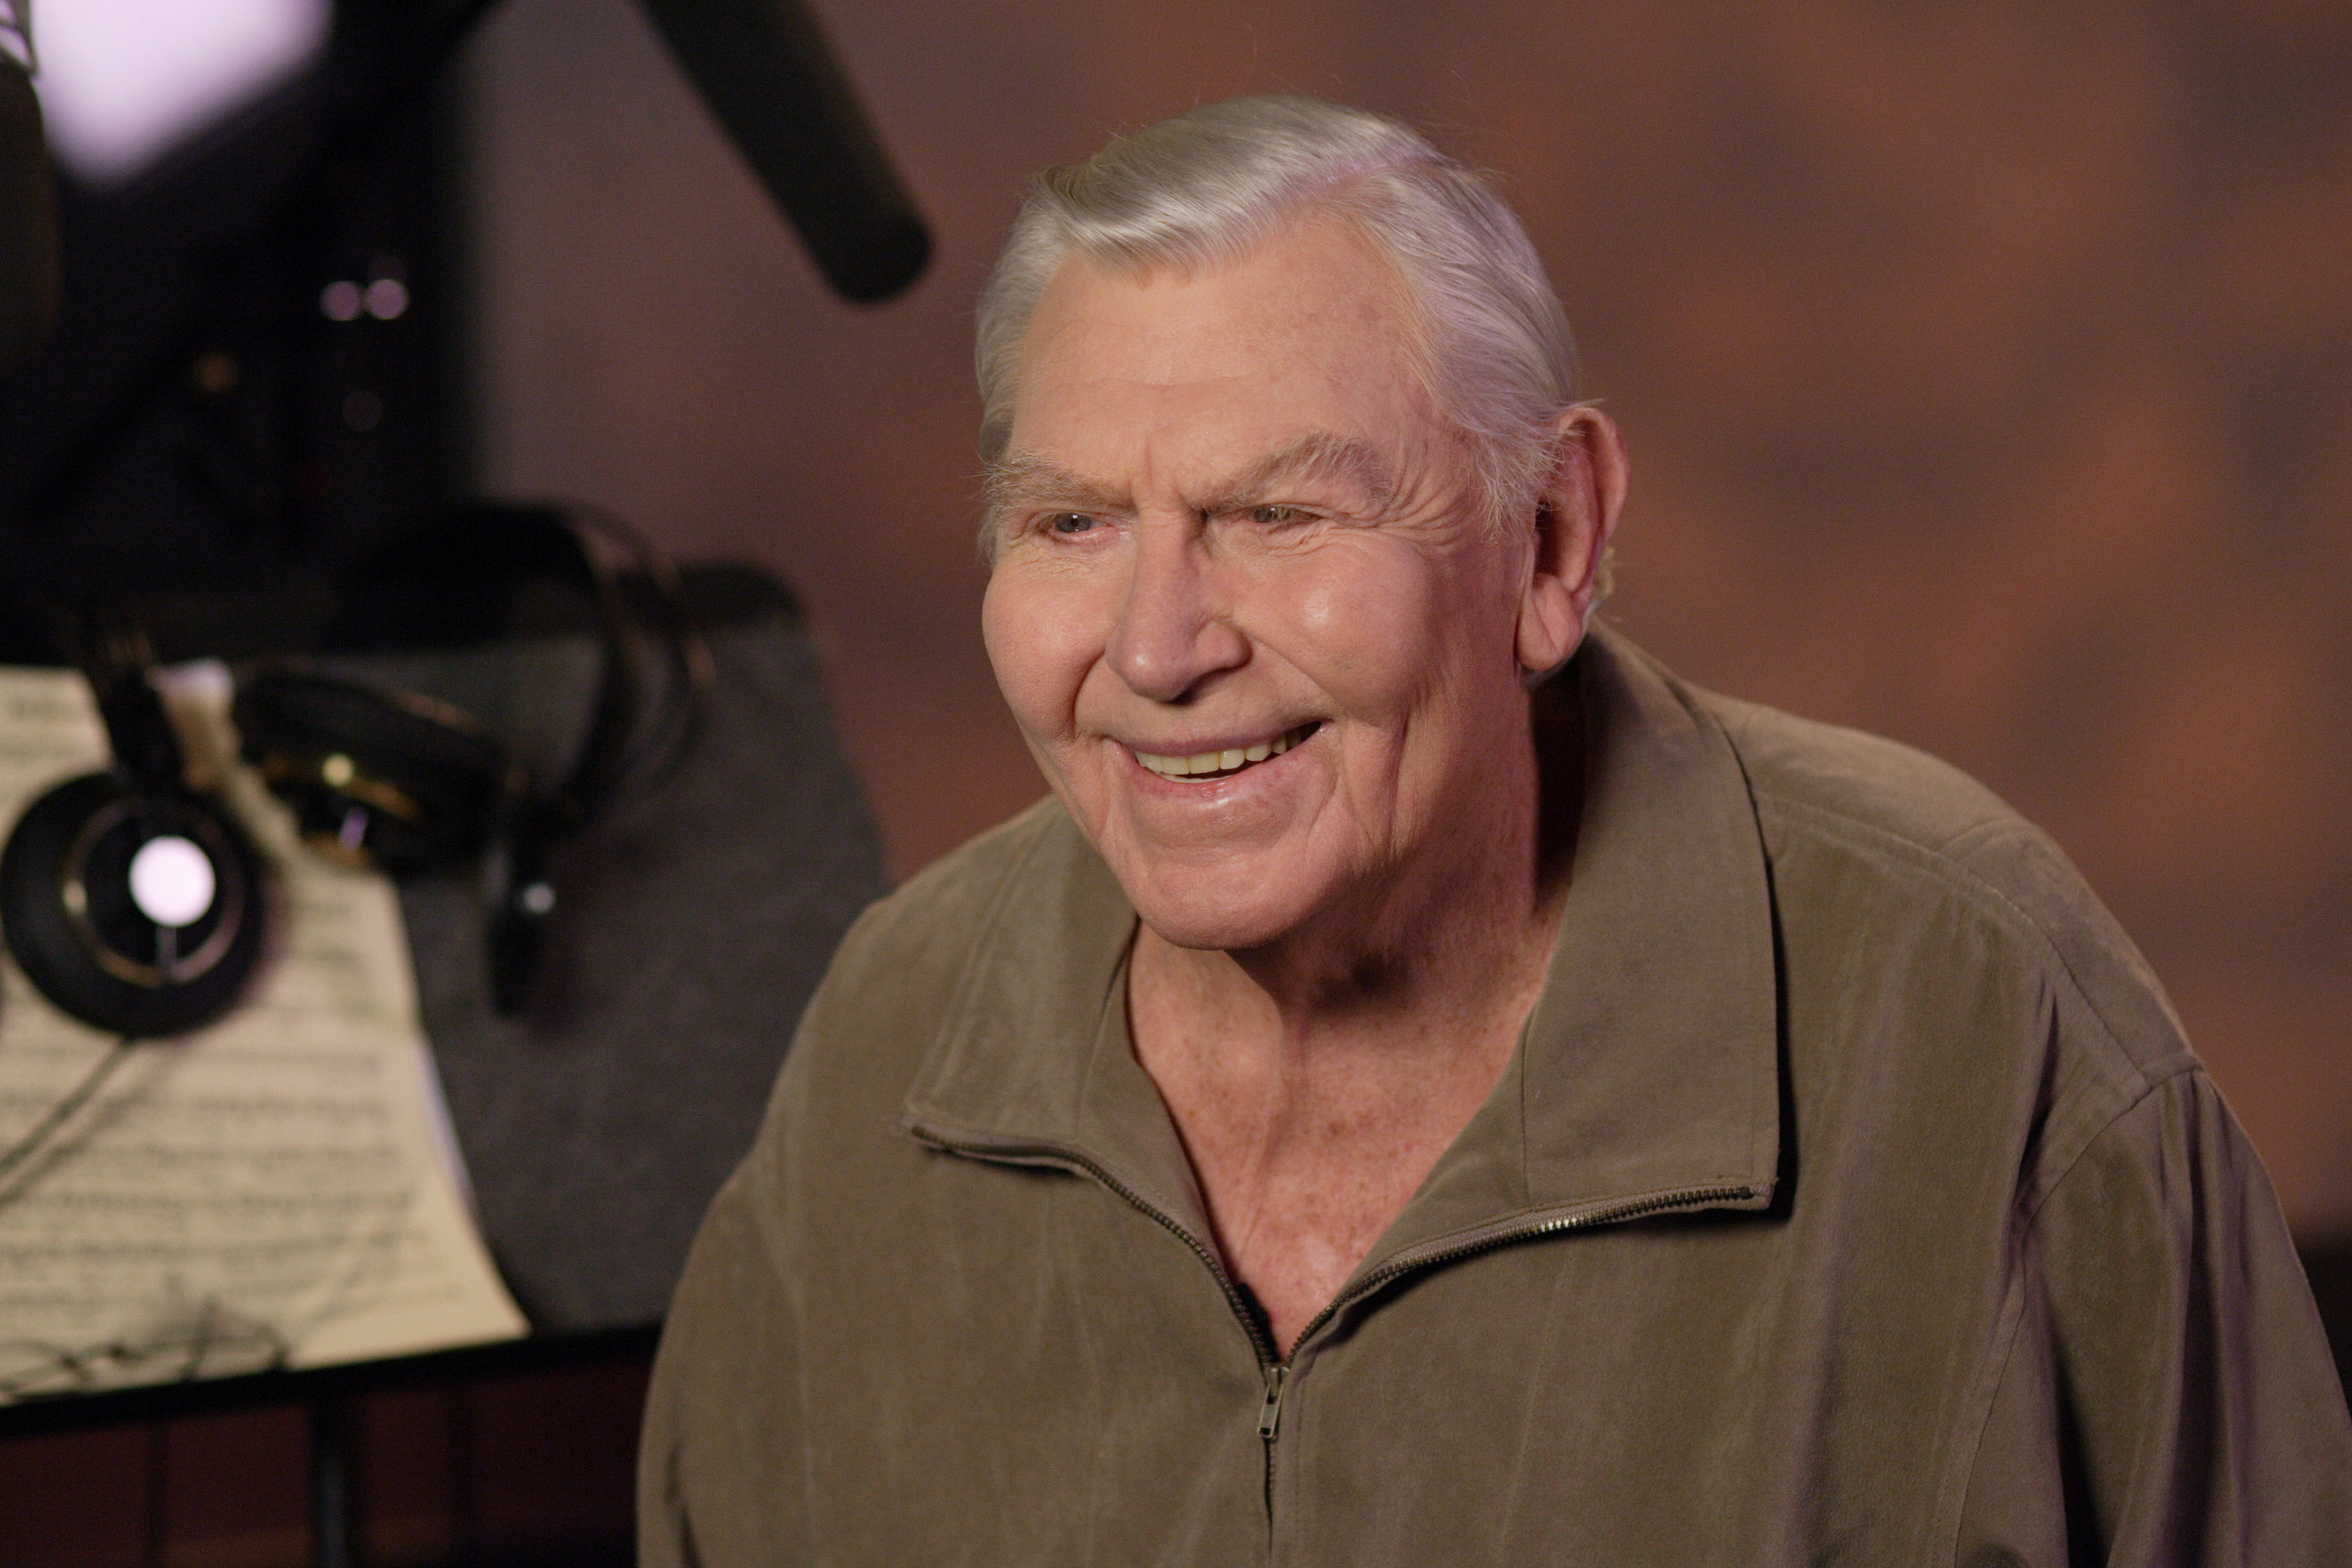 Andy Griffith (Santa) smiles for the camera during an interview for the behind the scenes video.